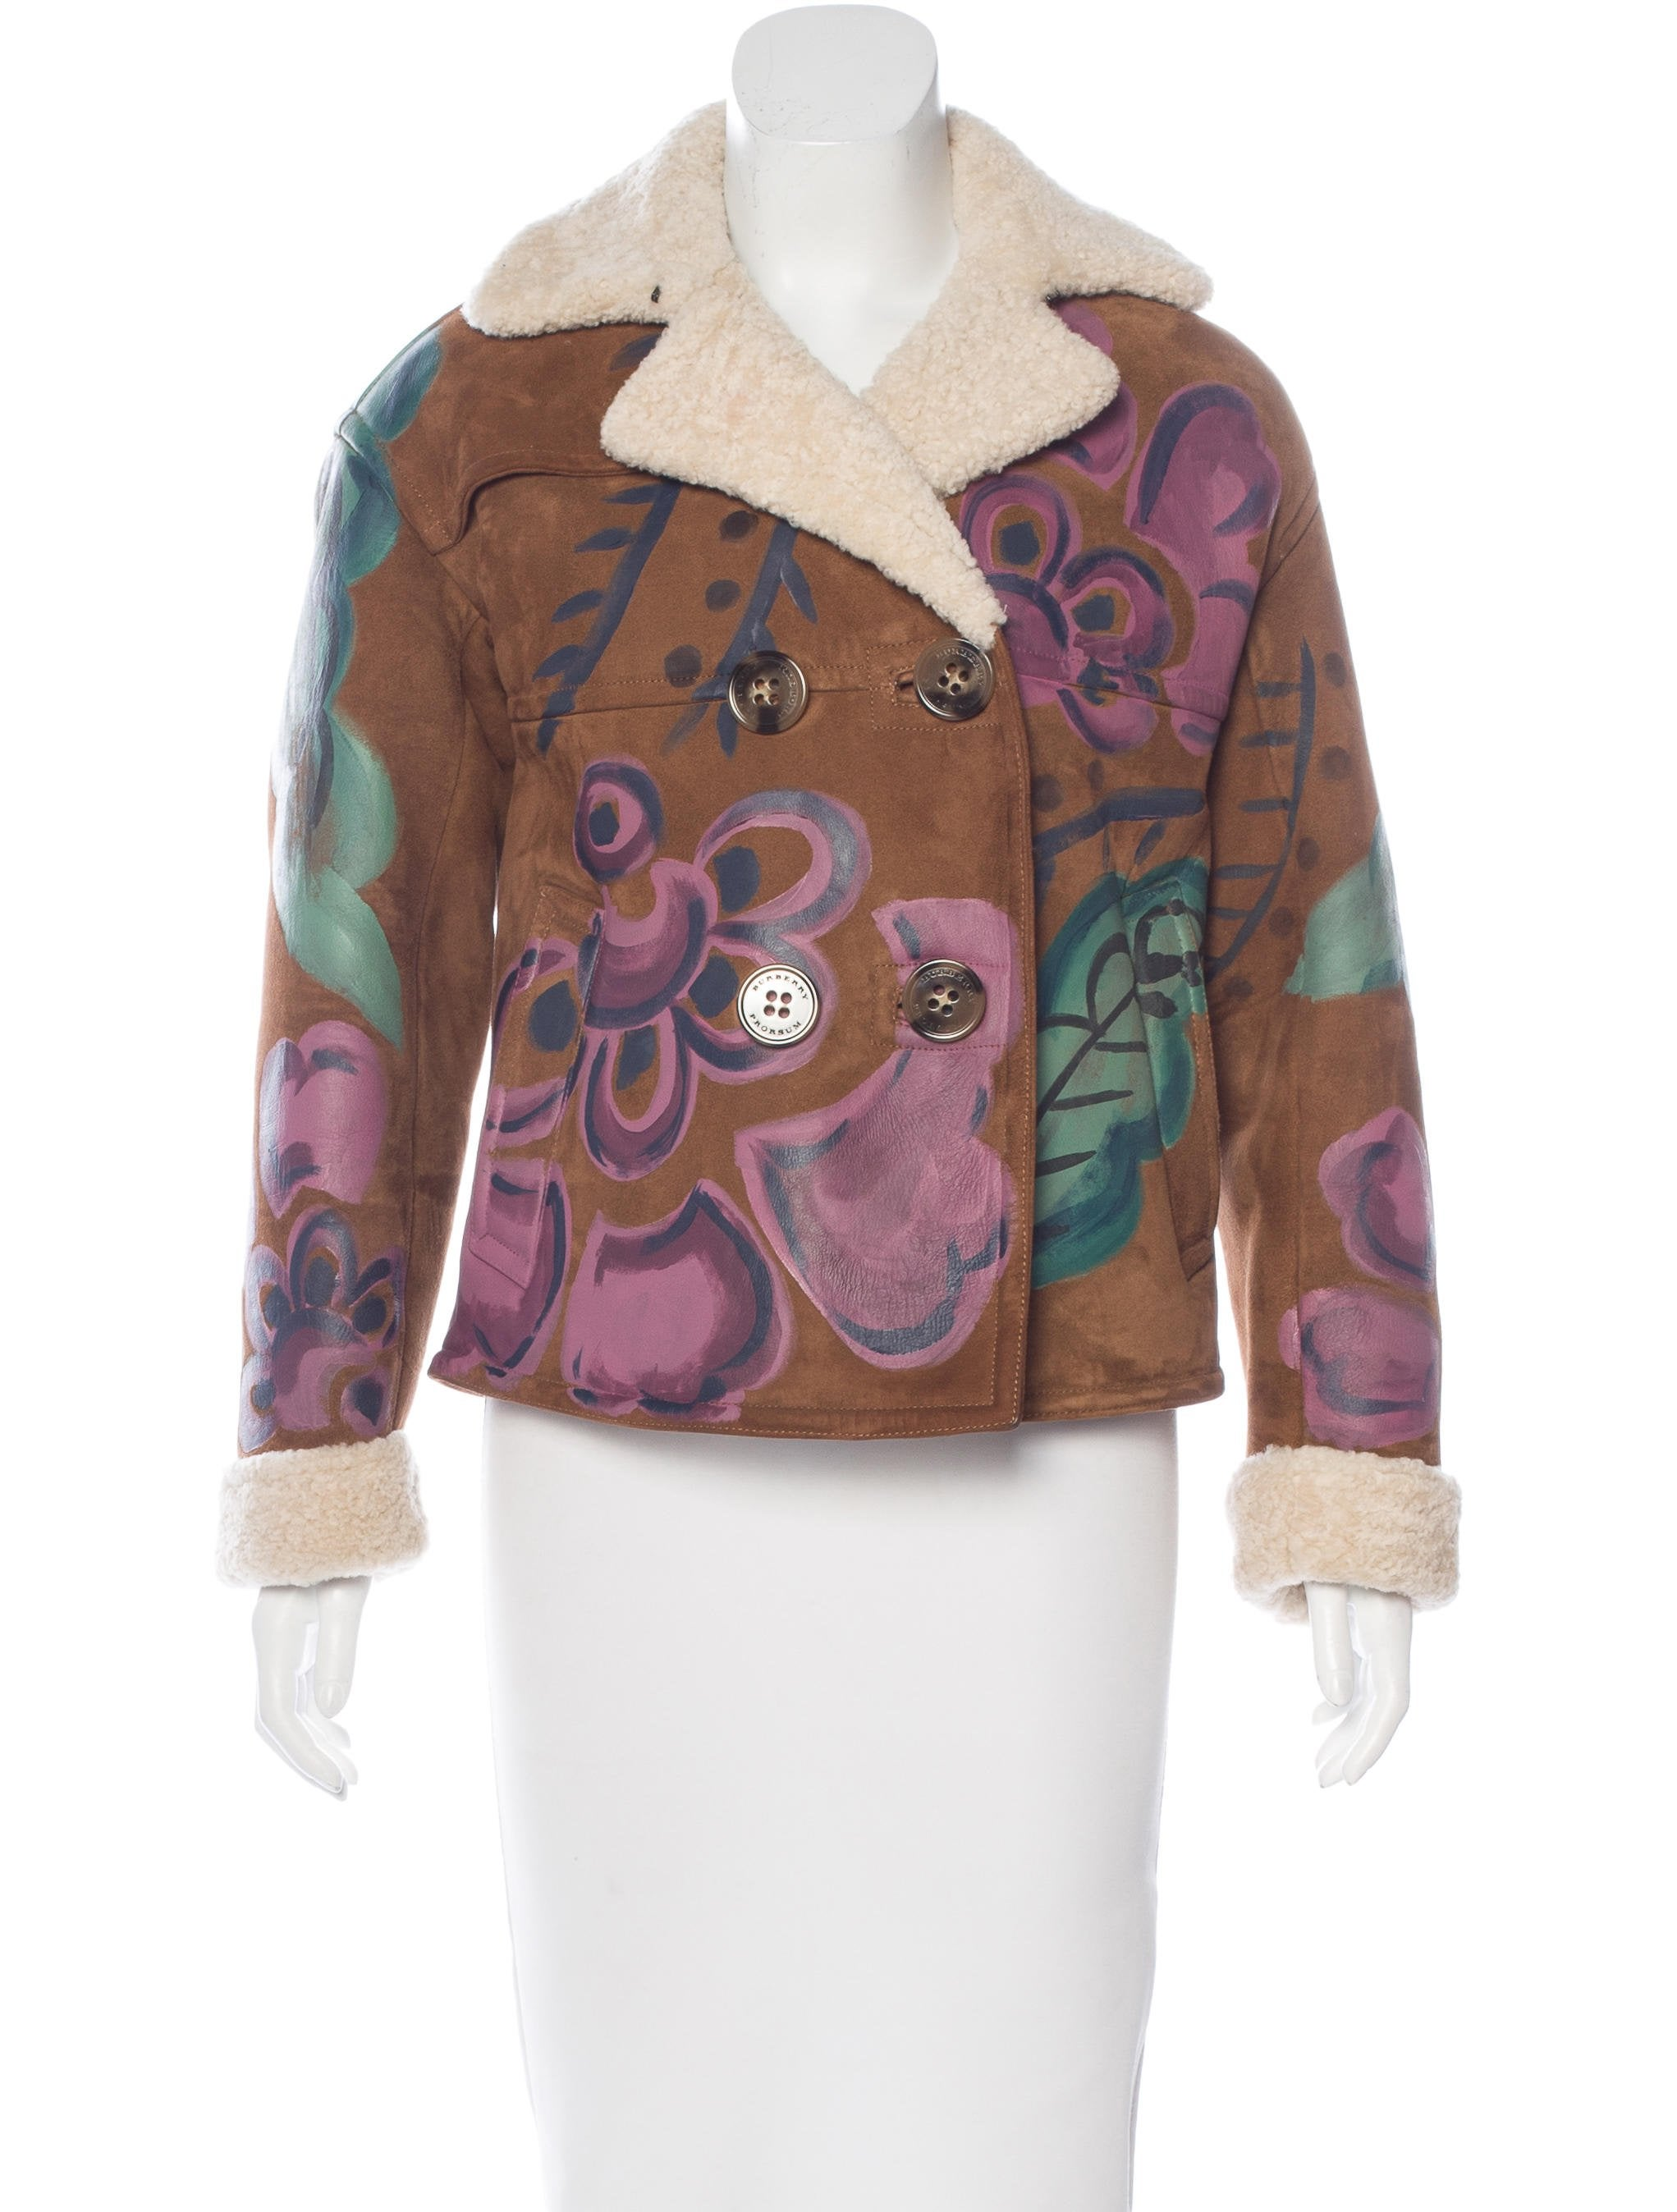 e631f07ae713 Burberry Prorsum Shearling Hand-Painted Jacket - Clothing - BUF23124 ...